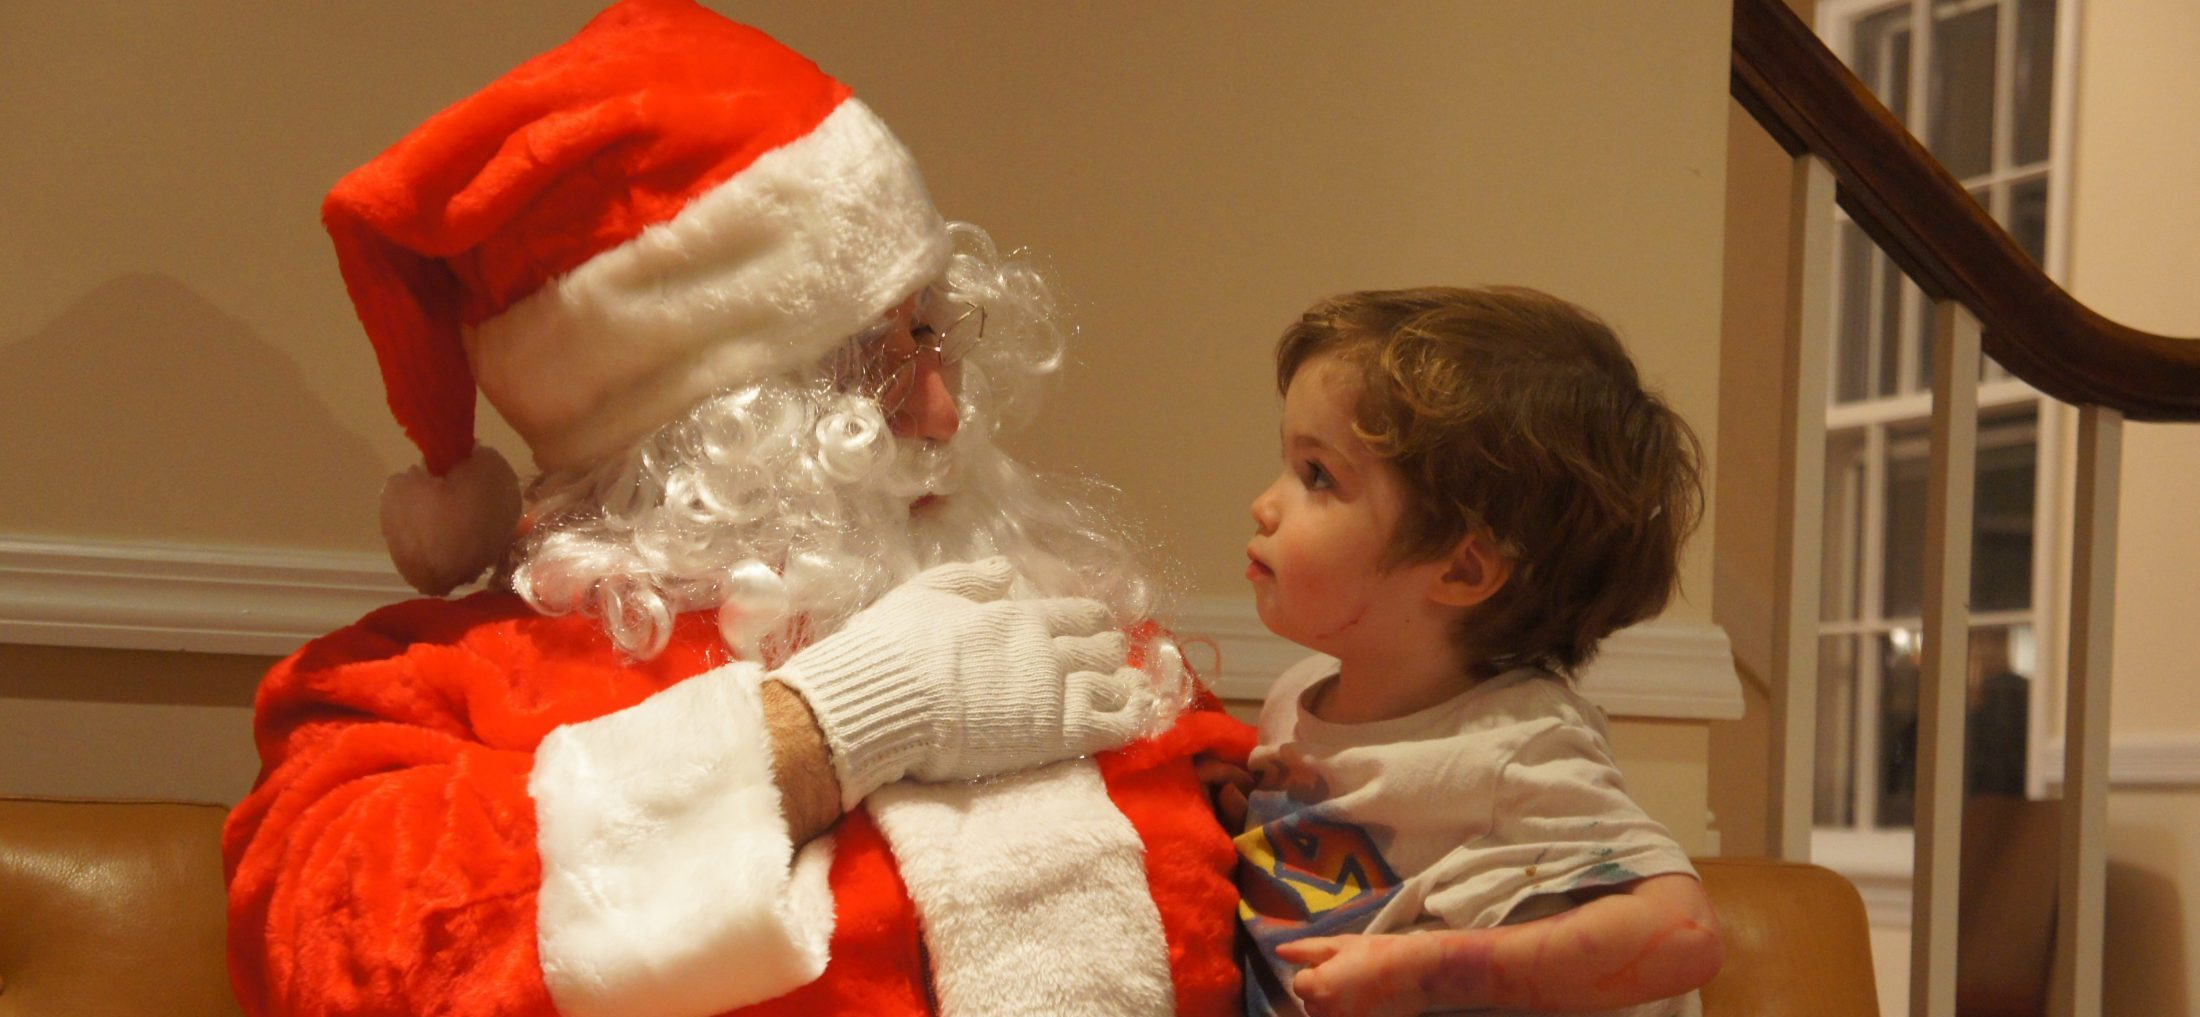 Shawn Brimley and his son Austin dressed up as Santa in the house of DC widow Marjorie Brimley